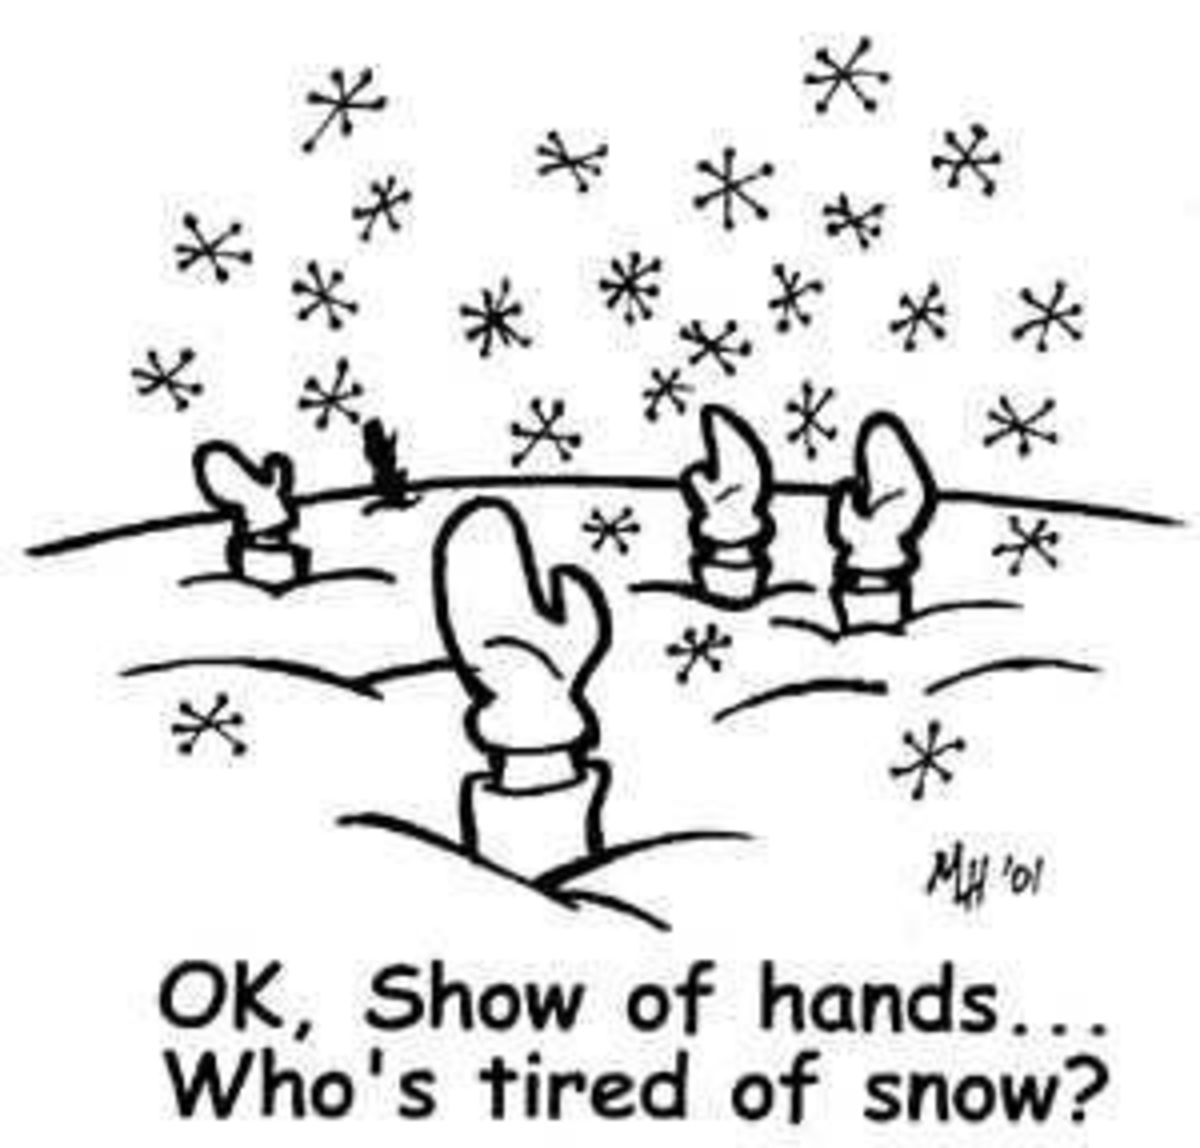 31 - Whose Tired Of Snow?